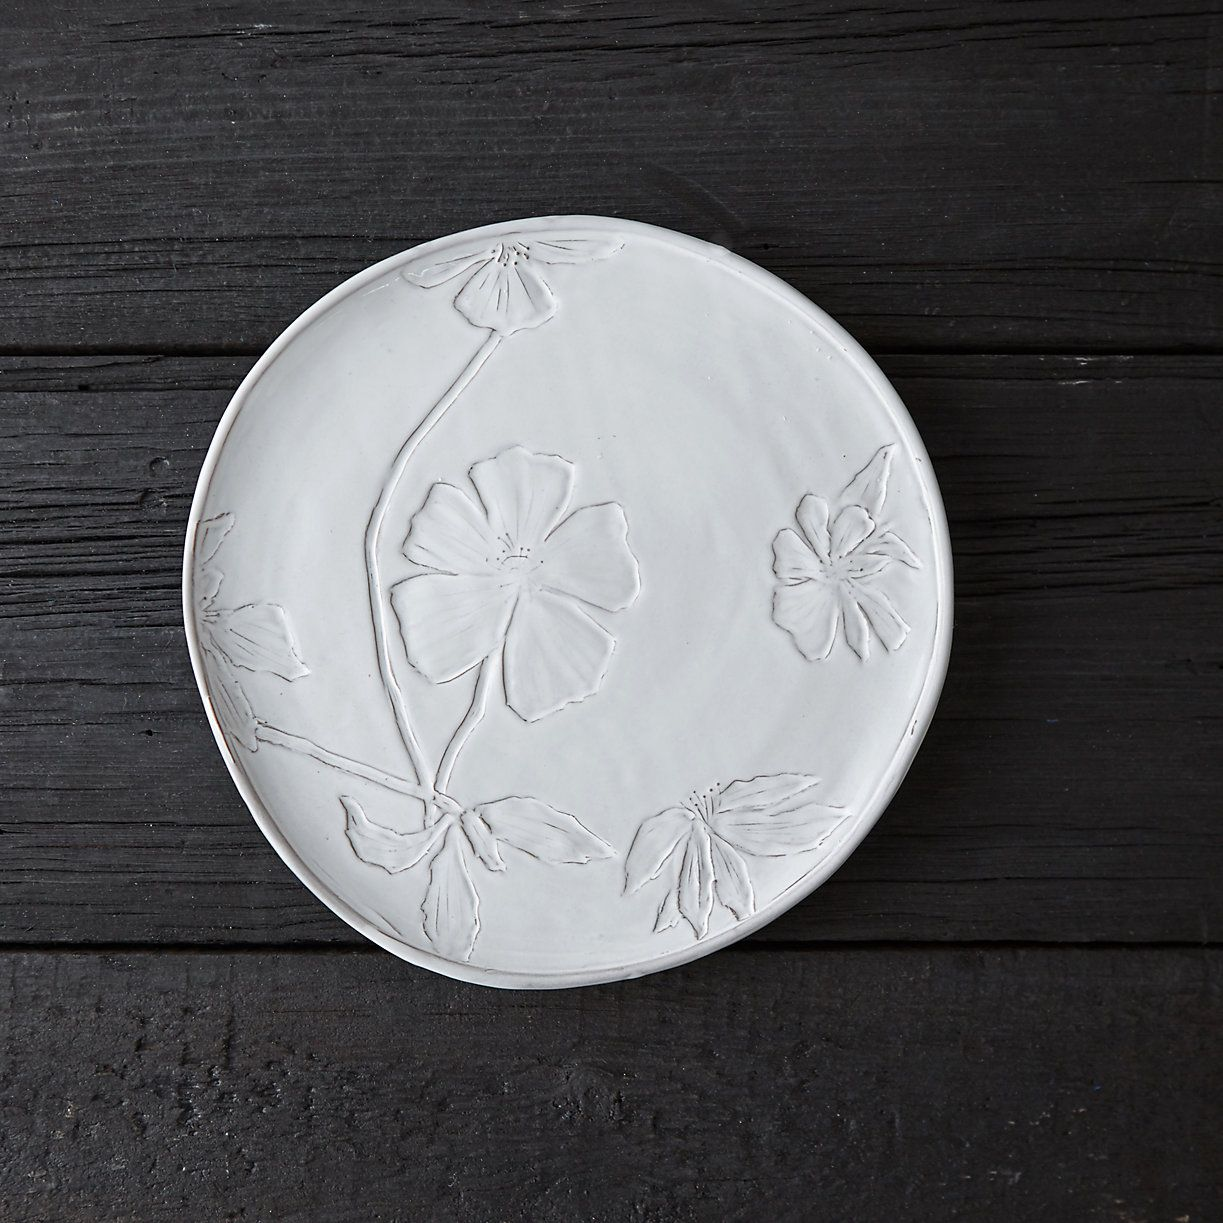 Handmade in Italy from glazed earthenware this dinner plate is scattered with meadow blooms. & Pressed Meadow Dinner Plate   Earthenware and Tablewares